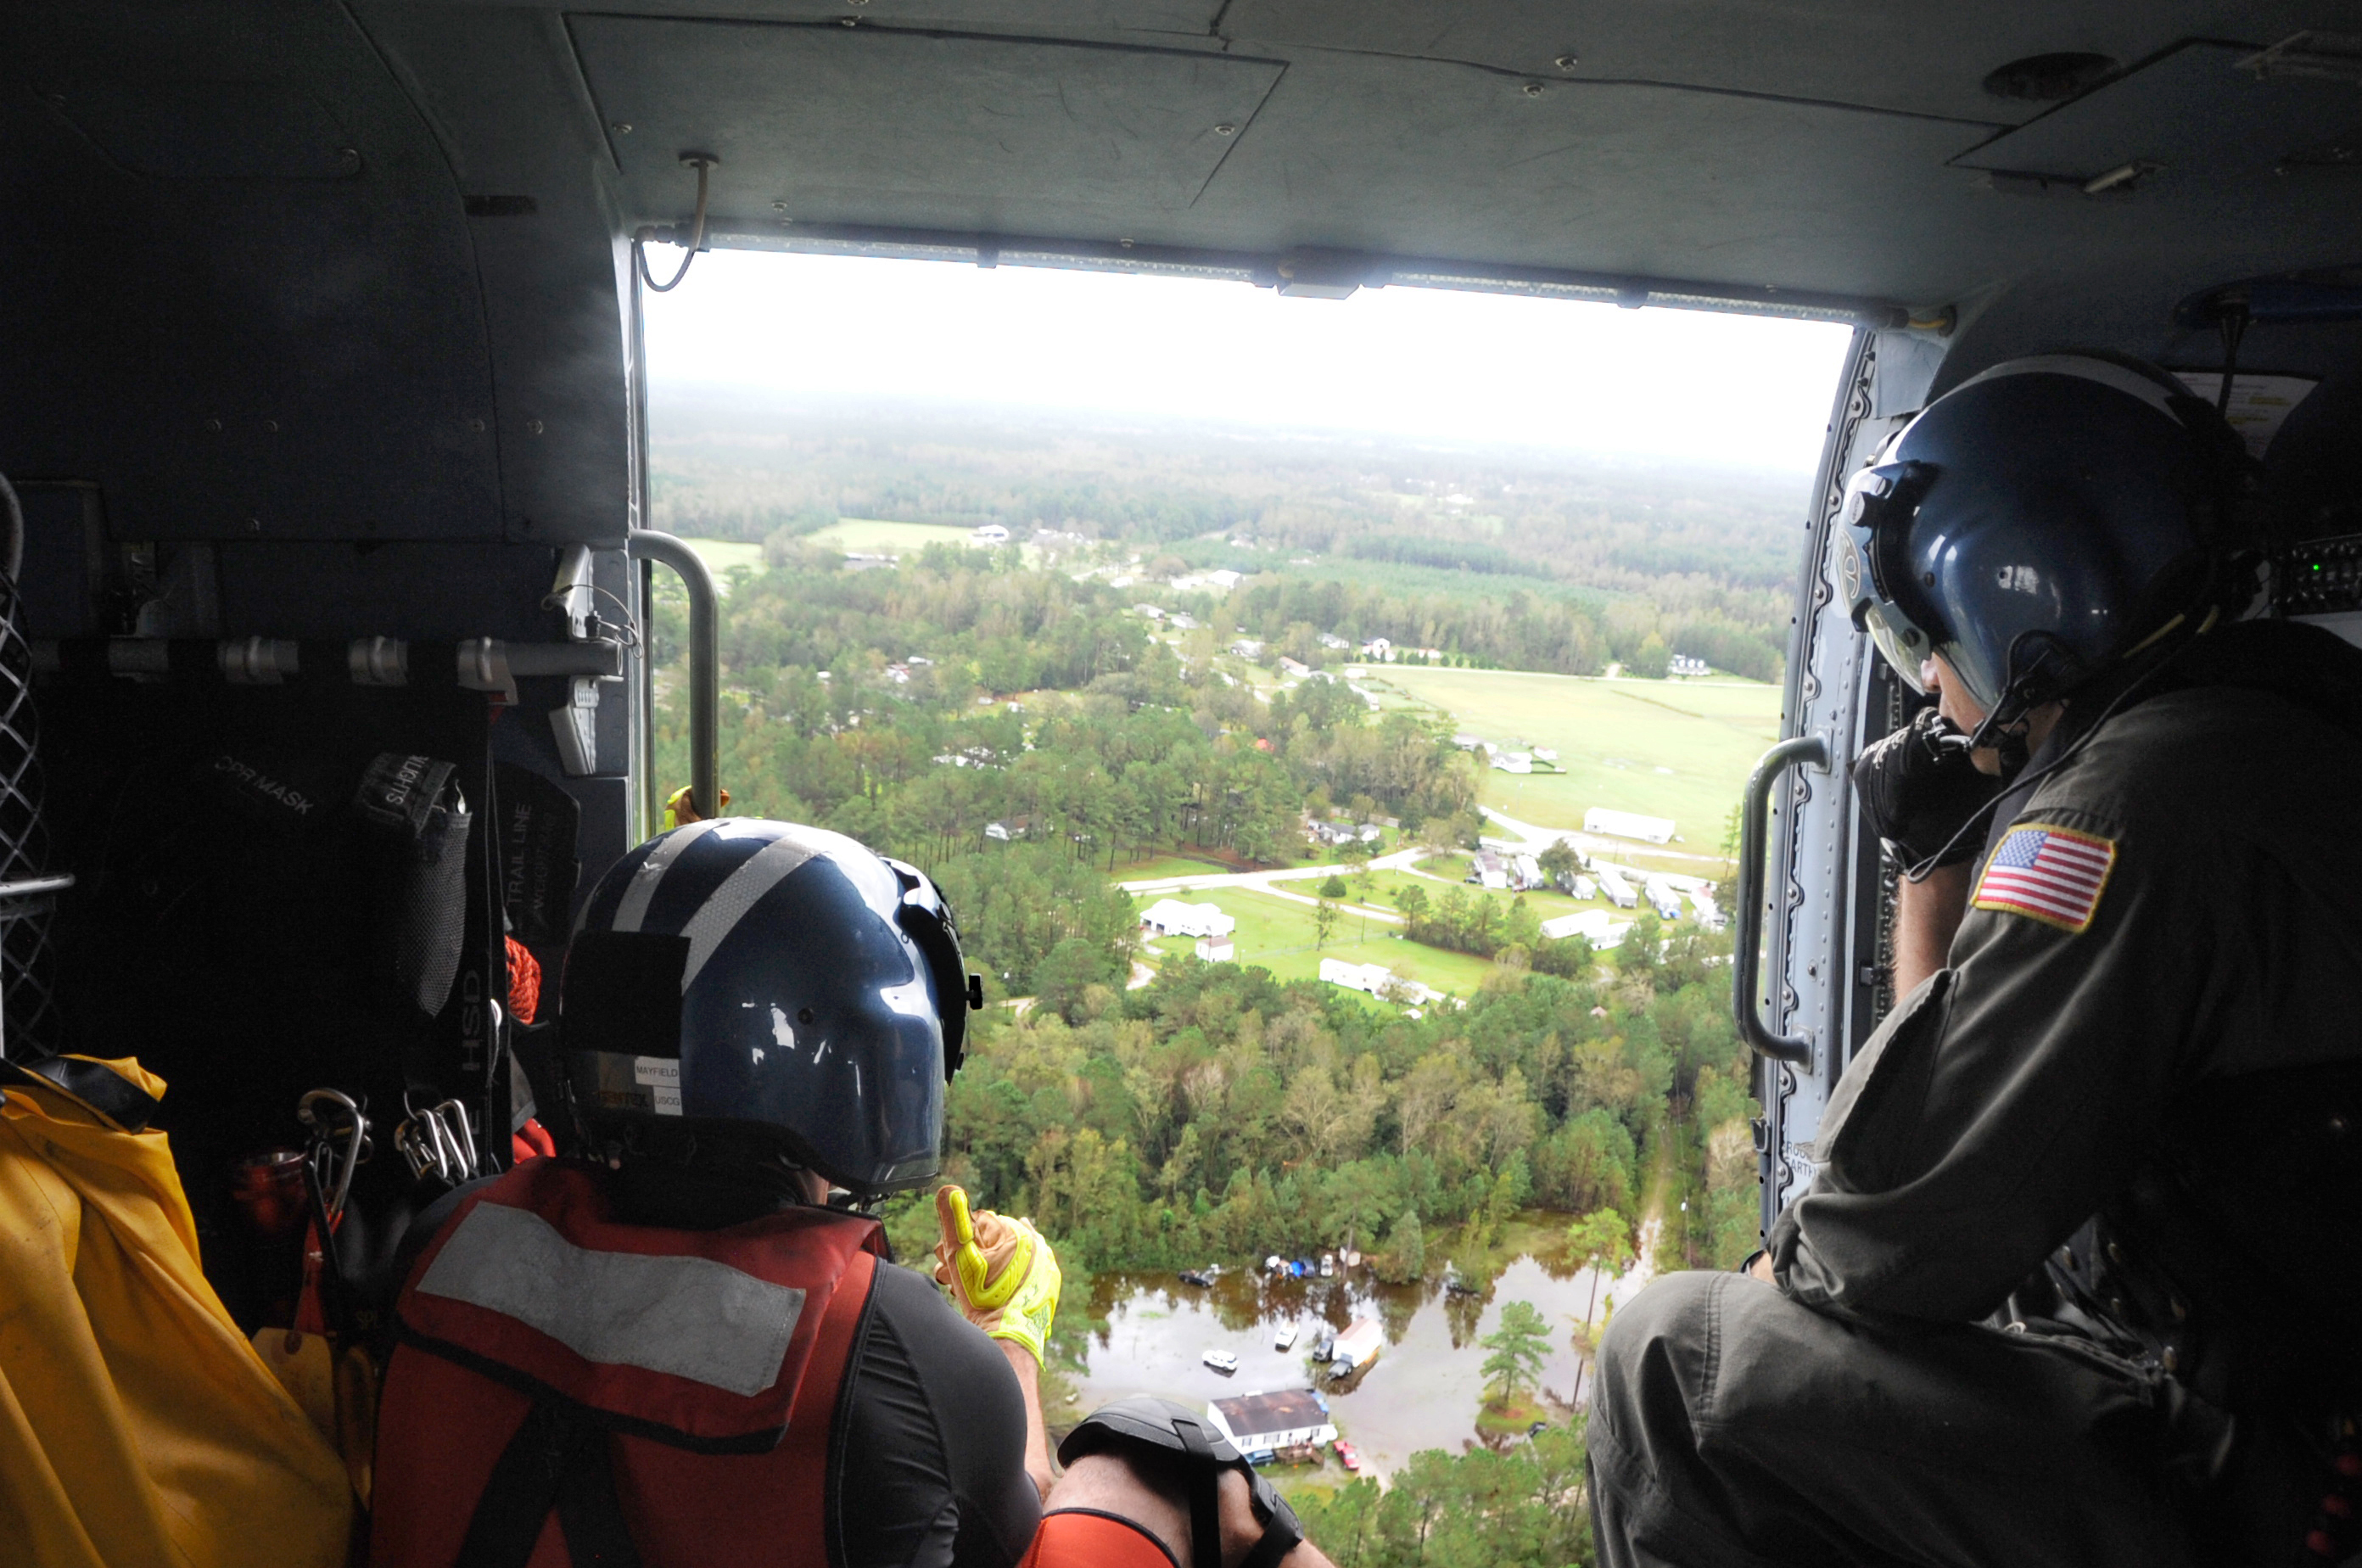 Coast Guard searches for survivors after Hurricane Florence, NC